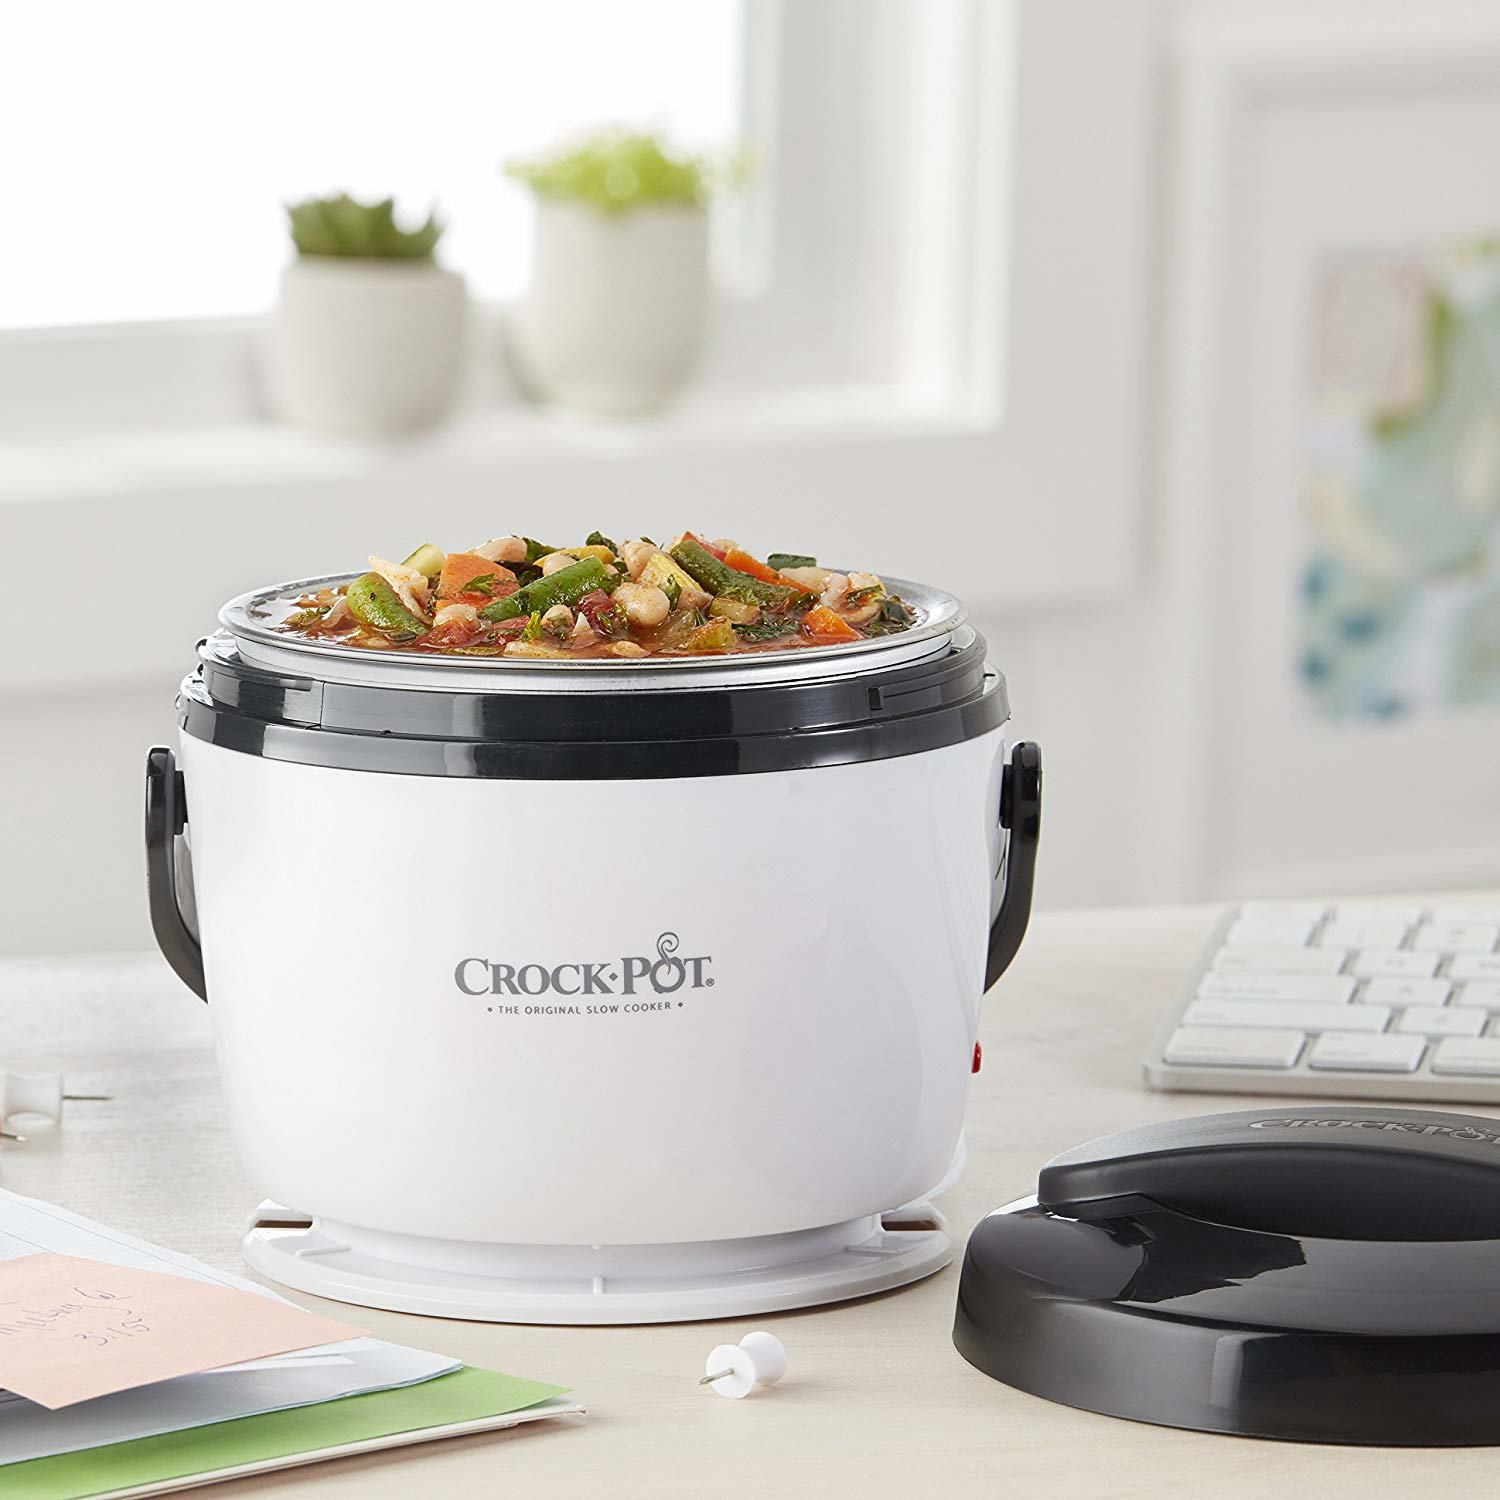 Amazon Shoppers Call This Mini $22 Crock-Pot the 'Best Money I've Spent in a While' 8926904402daa51f1a1f2d6c331a1a82